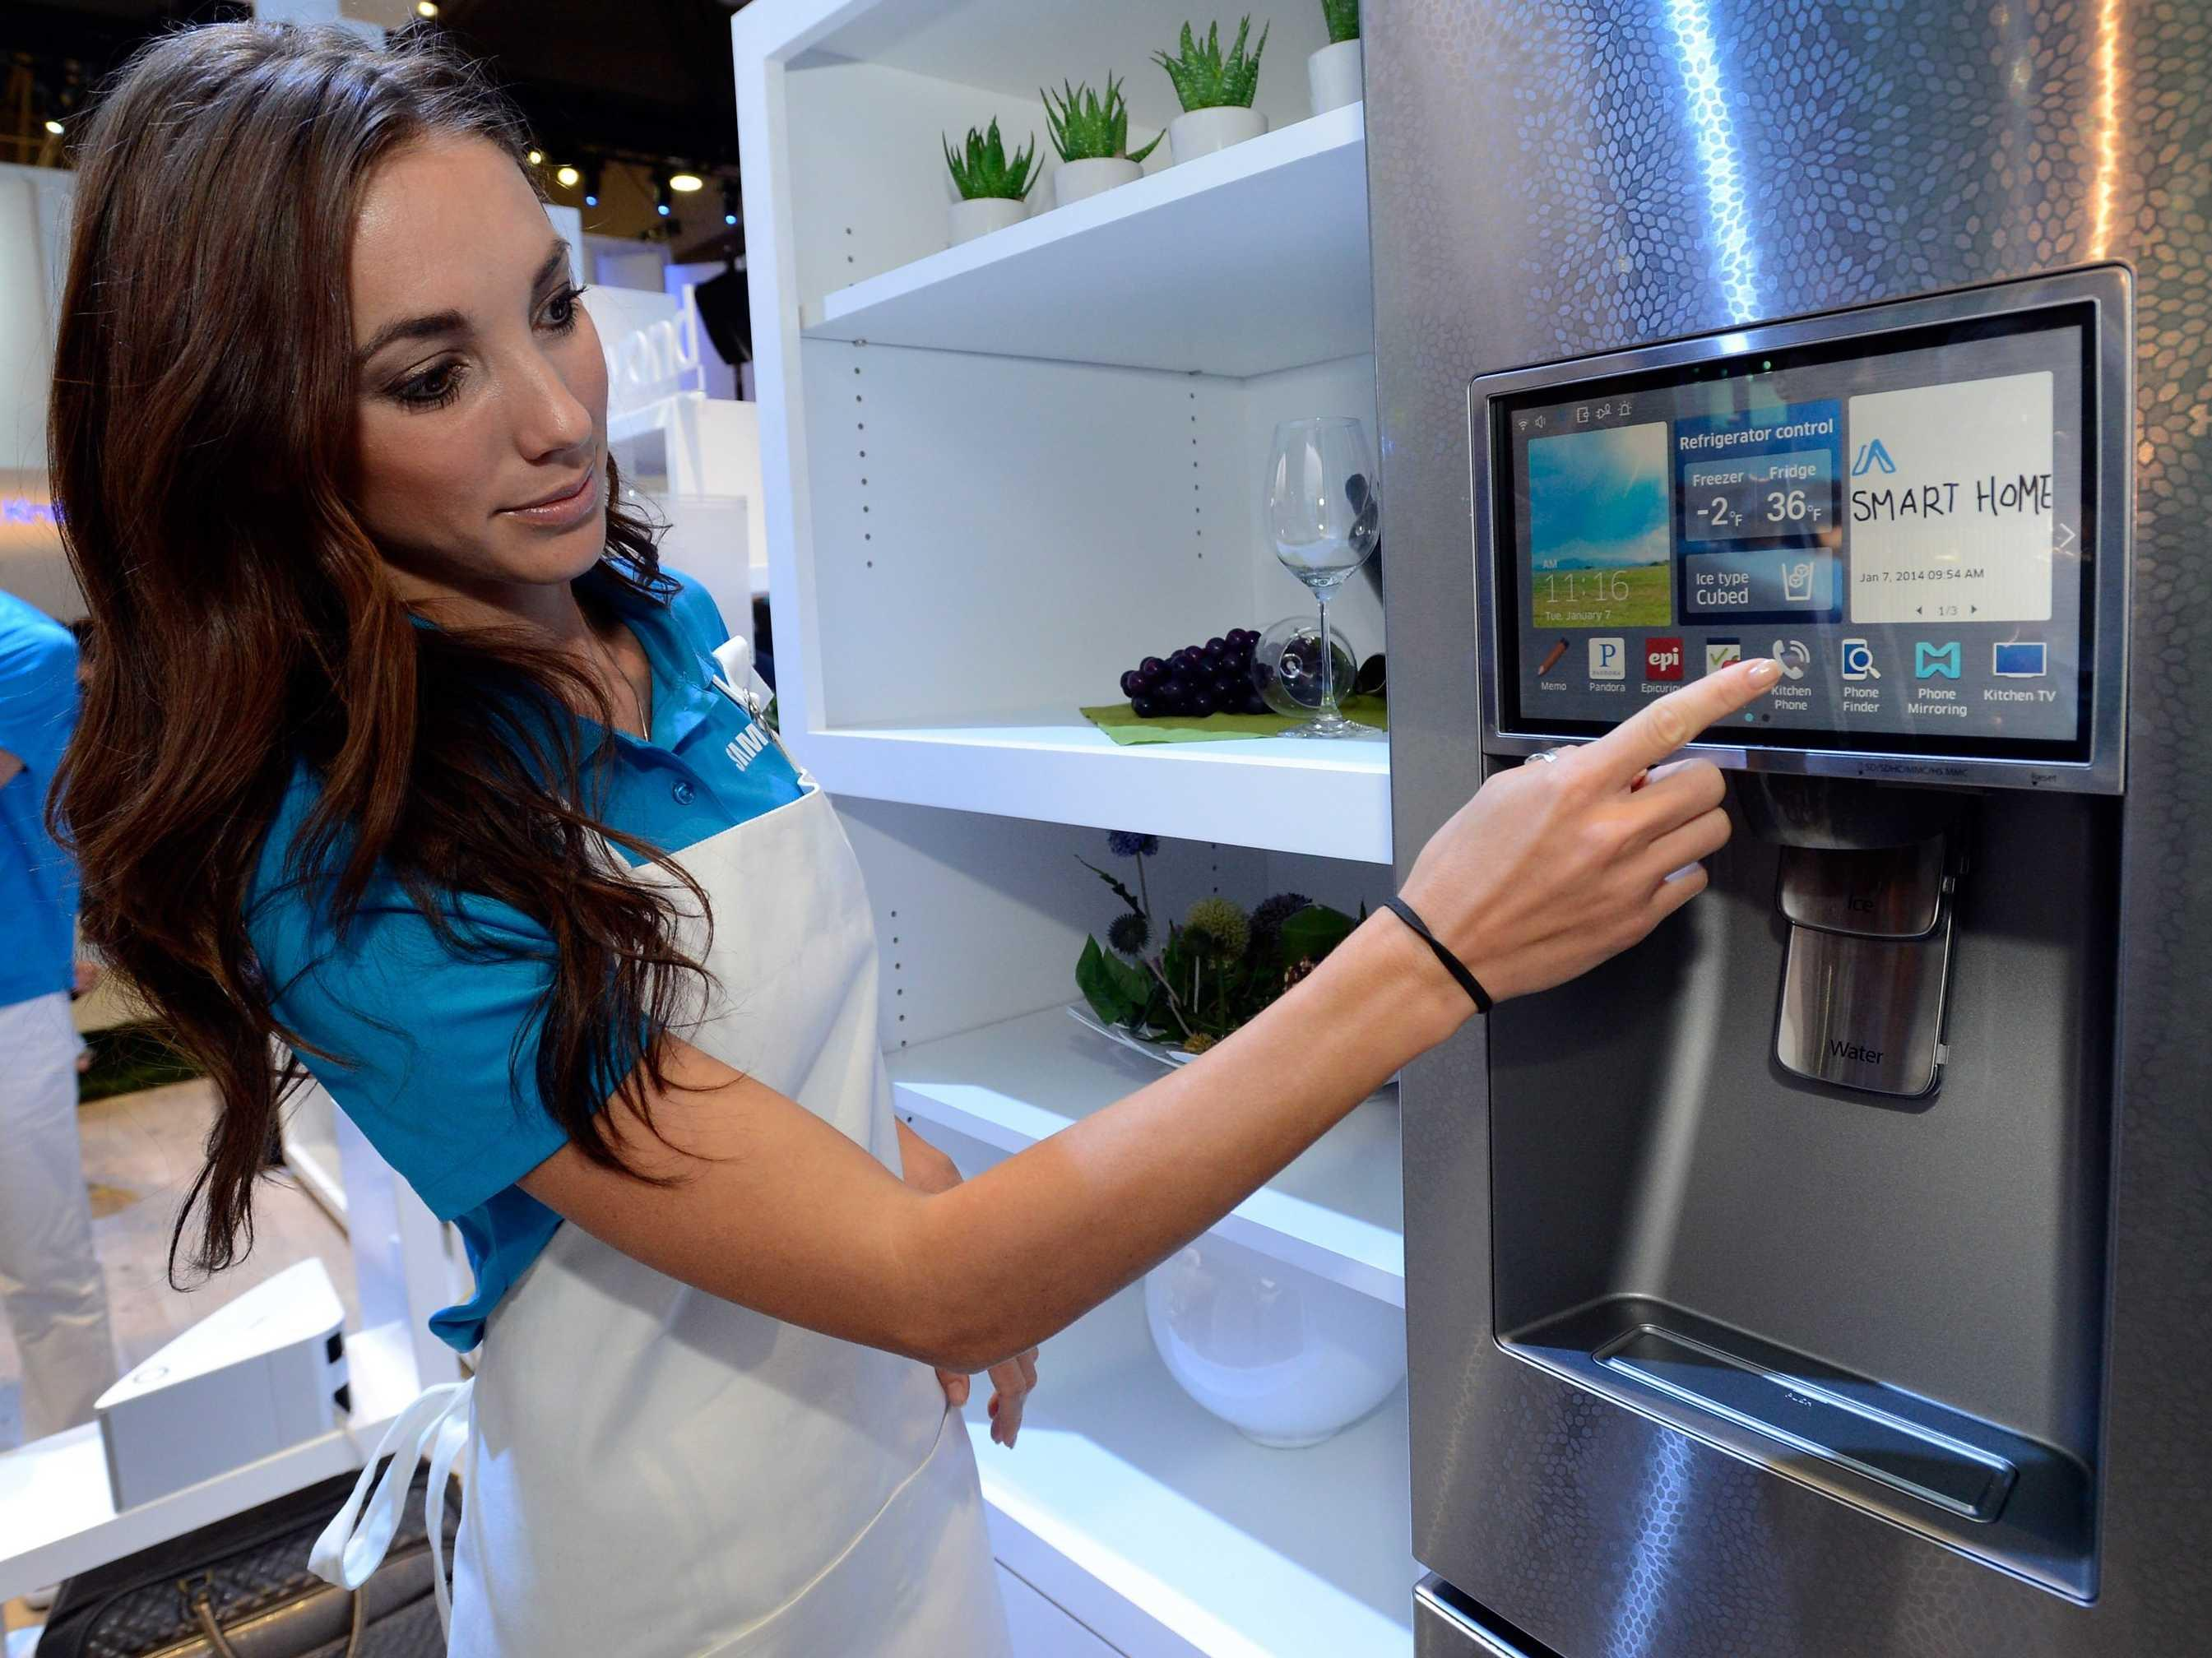 Visa says we're all going to have internet-connected fridges in the future